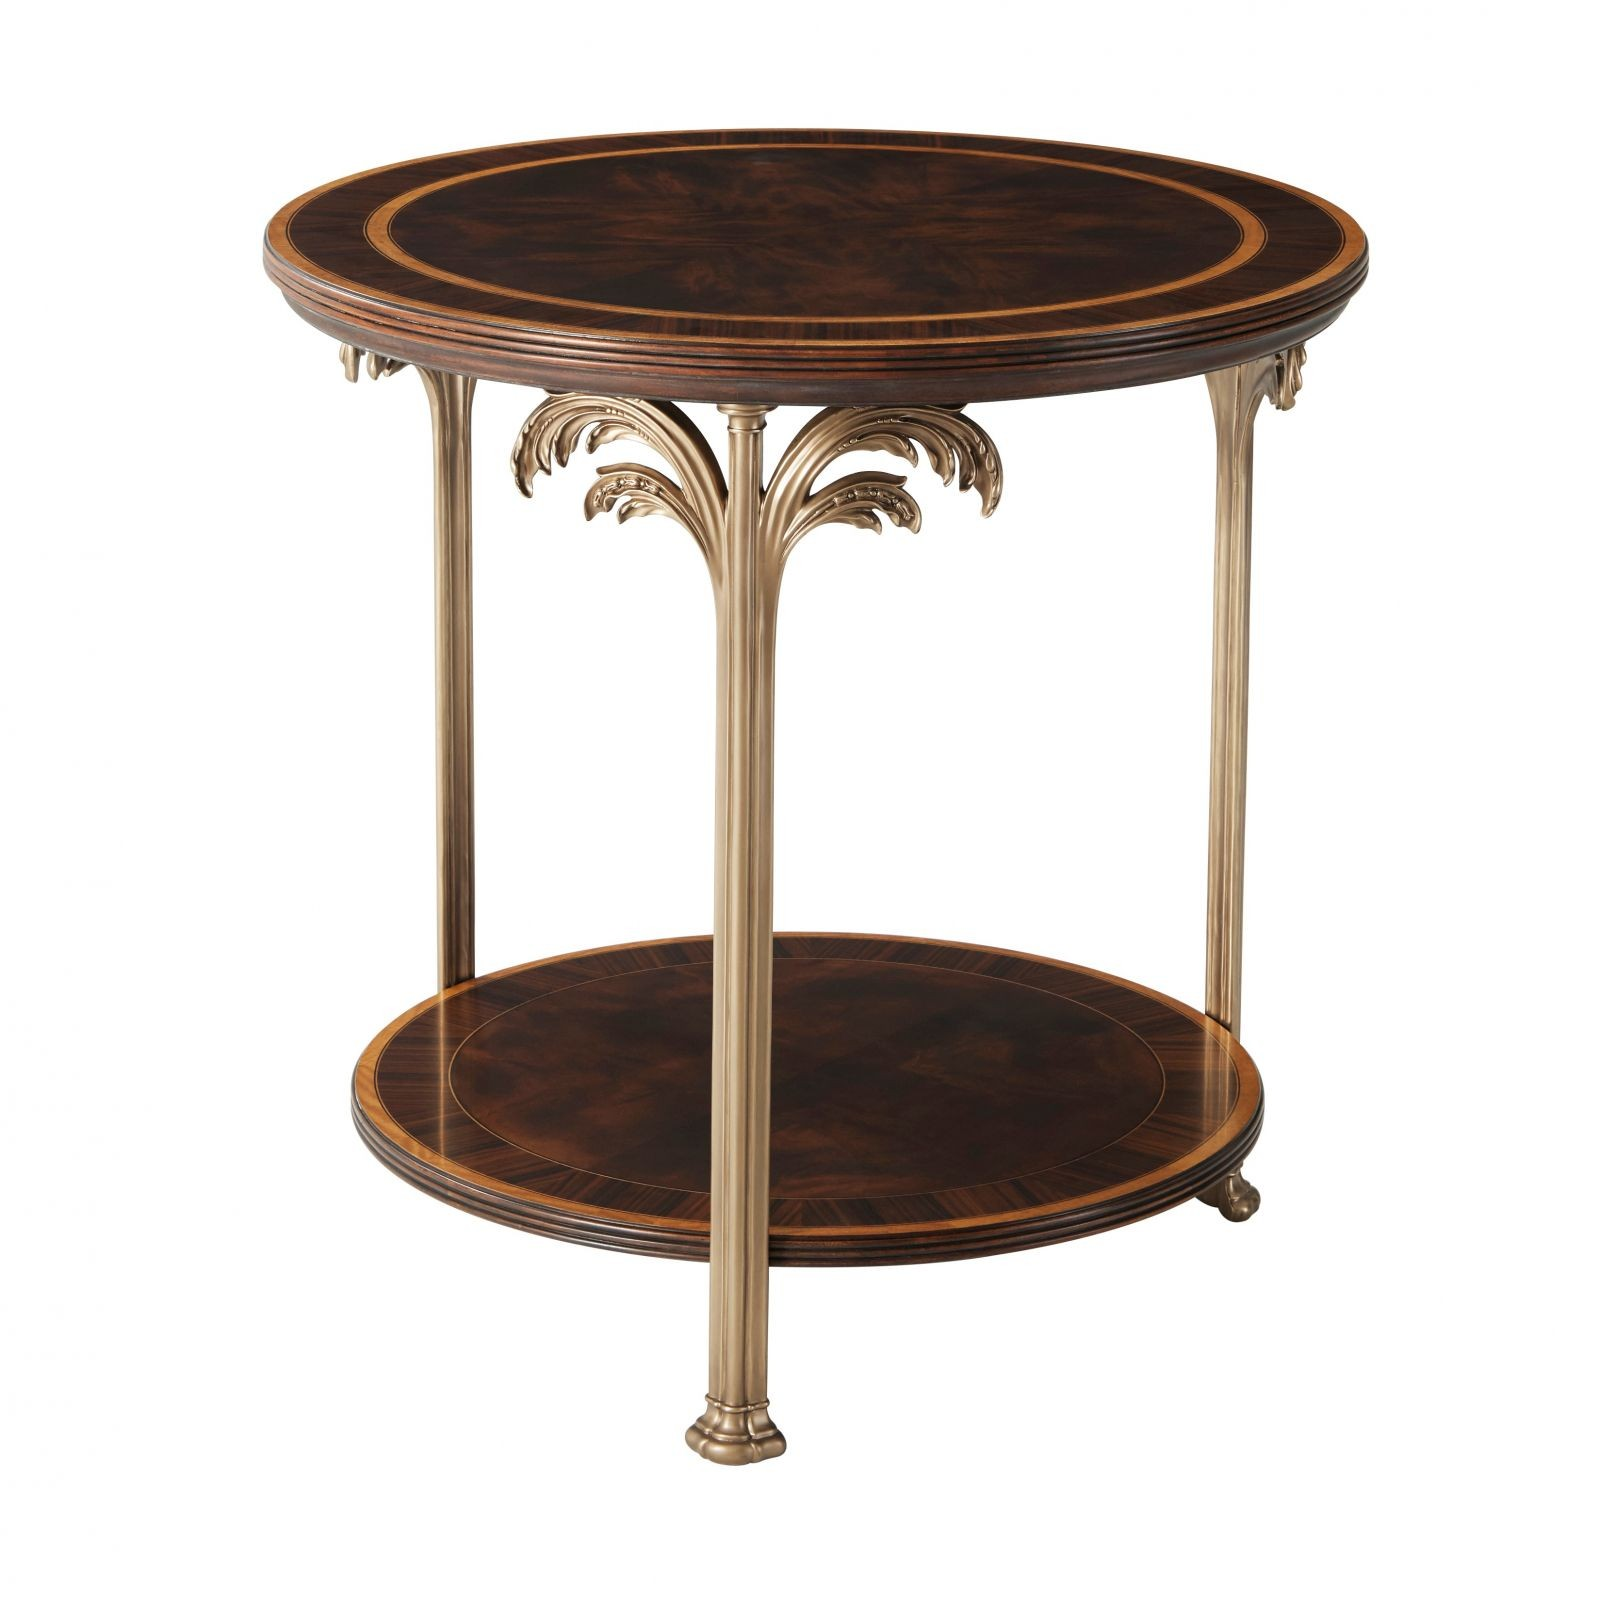 A Finely Detailed Side Table